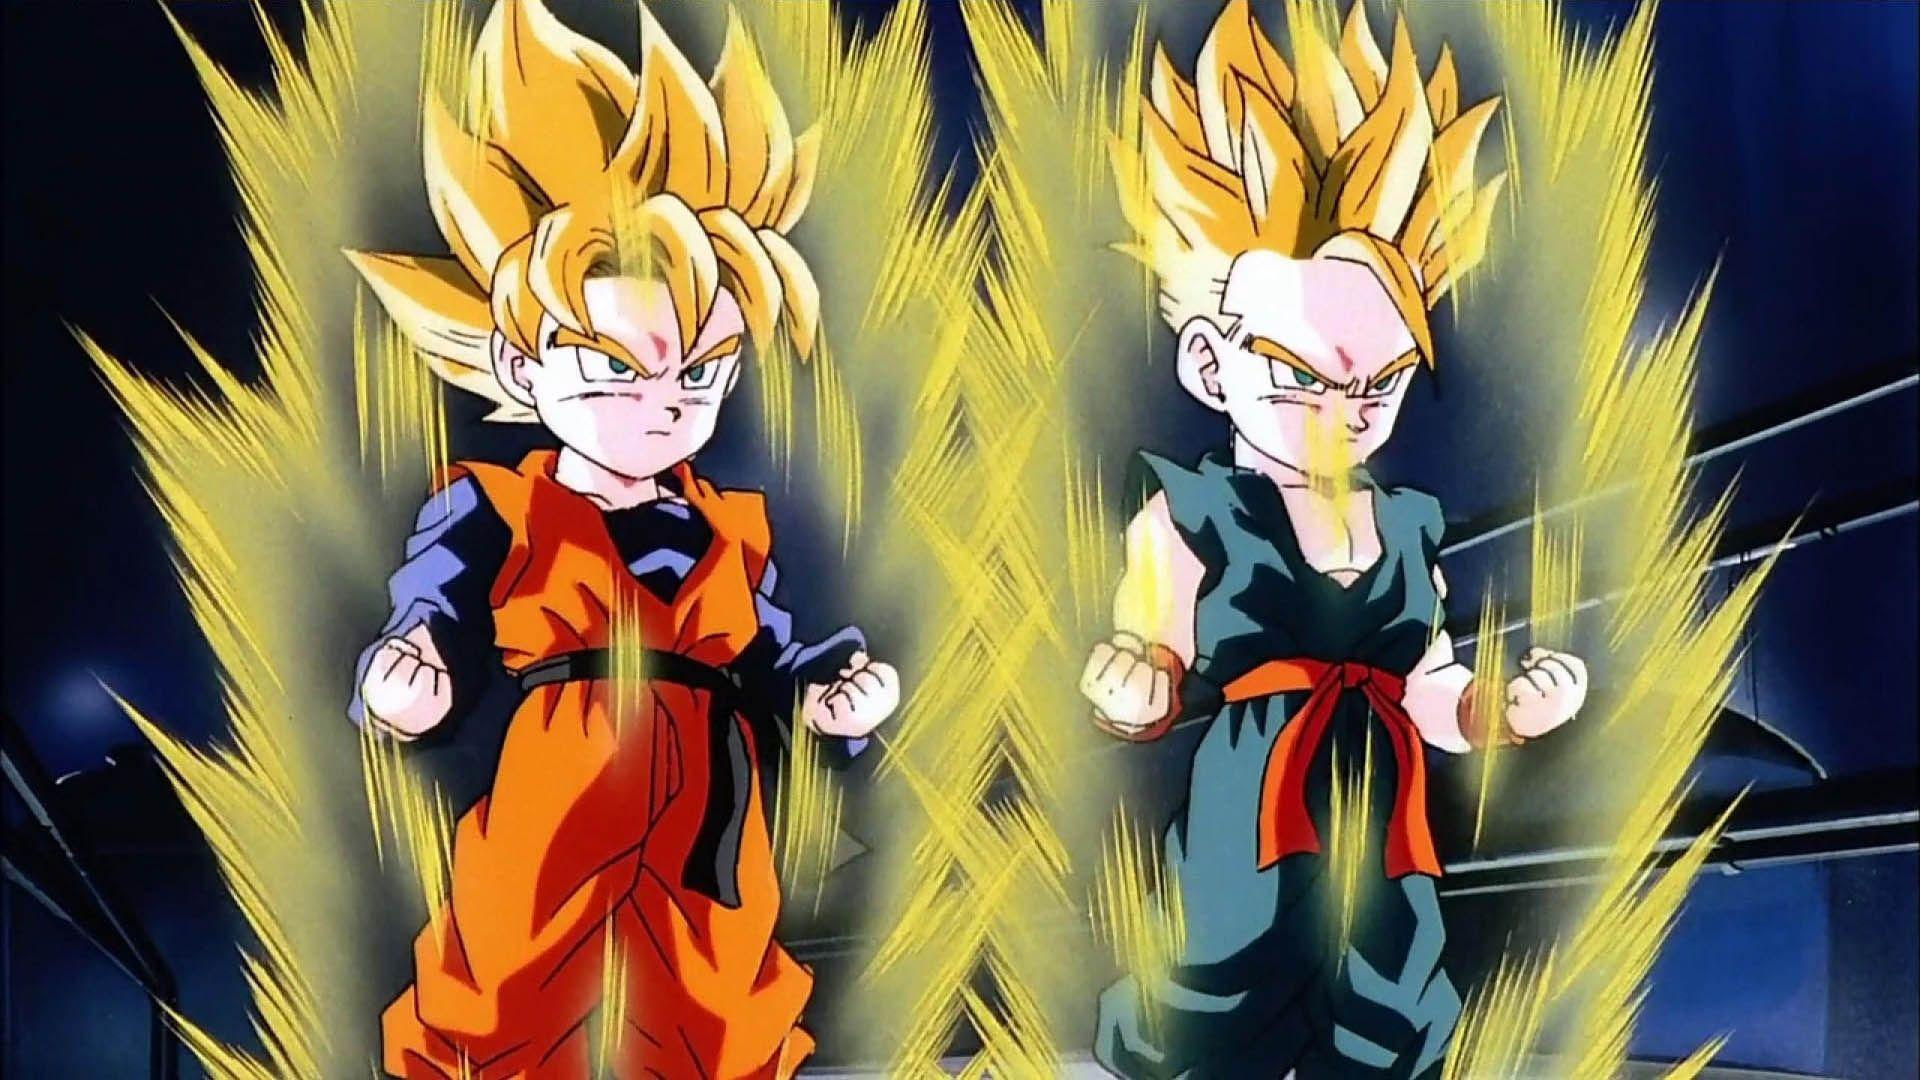 Goten Dragon Ball HD Wallpaper Backgrounds Wallpapers